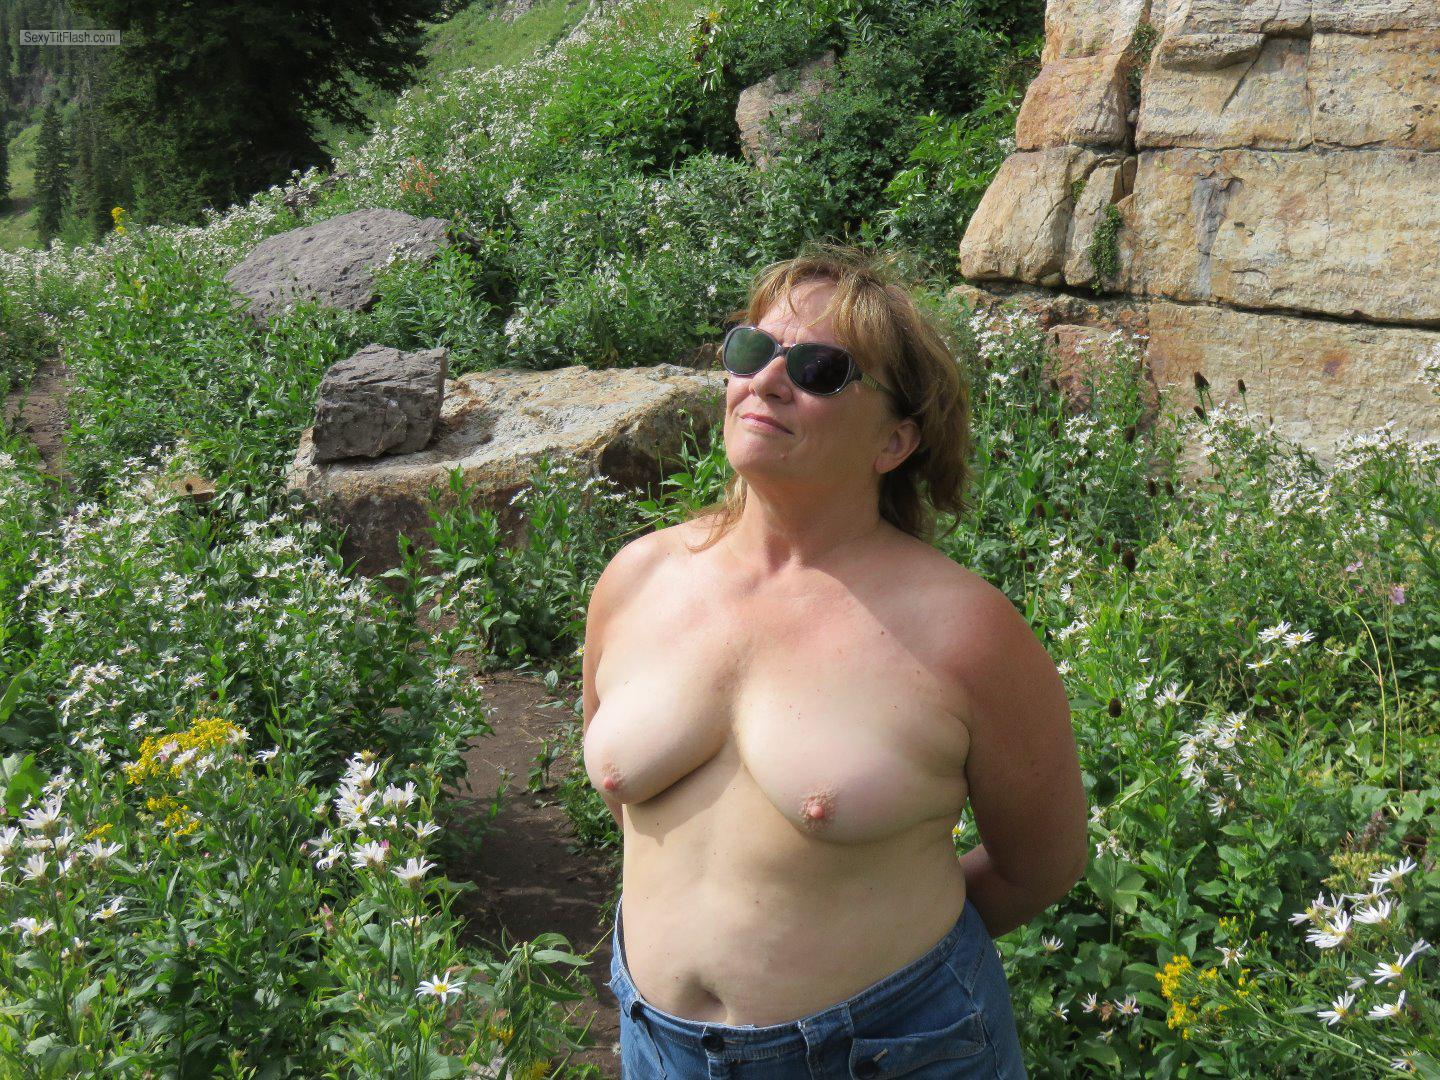 Tit Flash: My Very Small Tits - Karenkri from United States